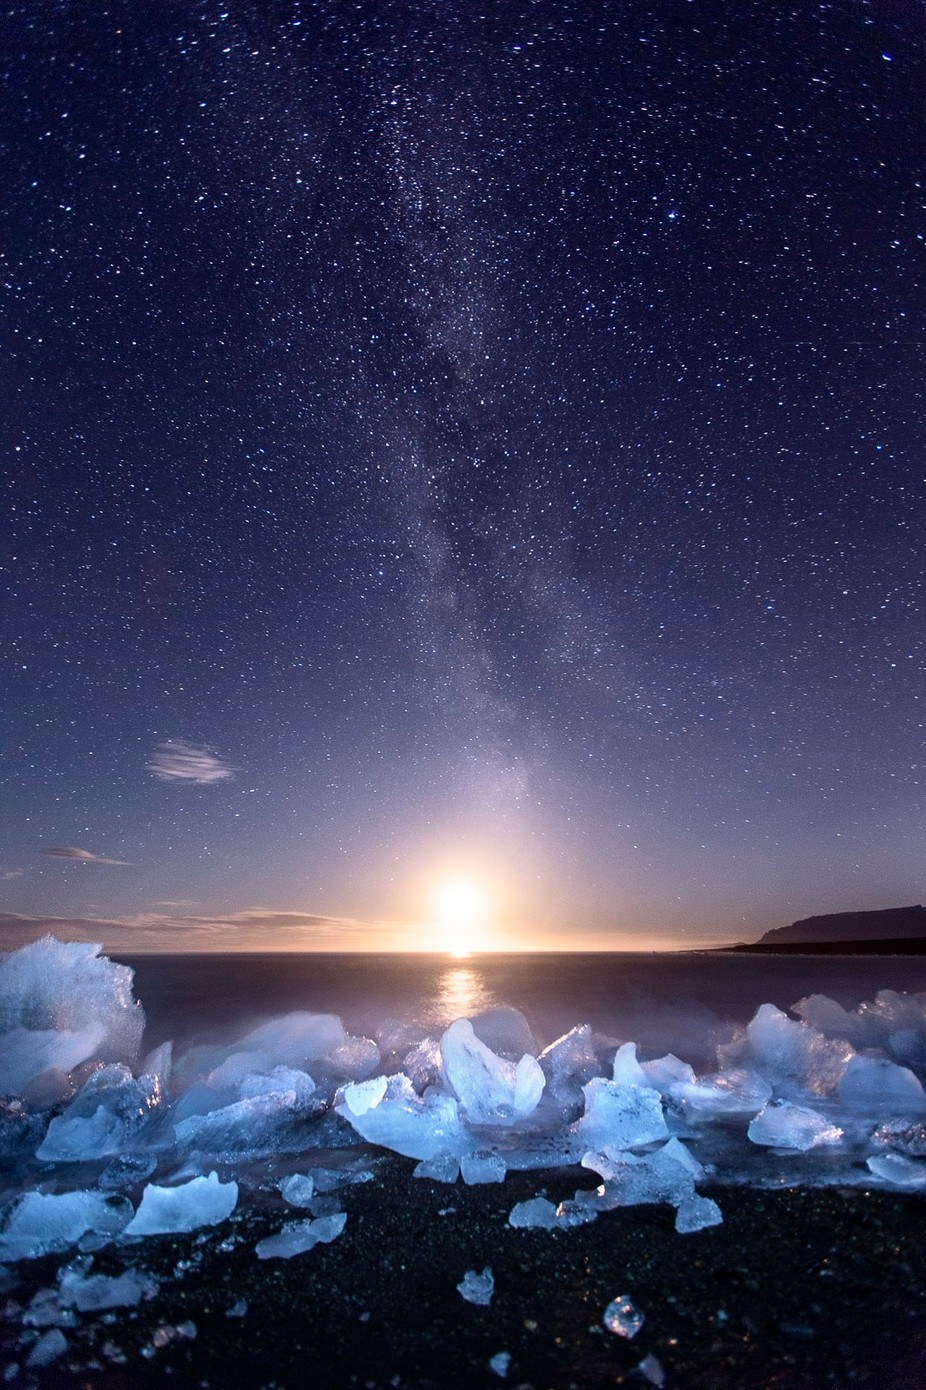 Icy Beach Moonset by madspeteriversen - The Four Elements Photo Contest